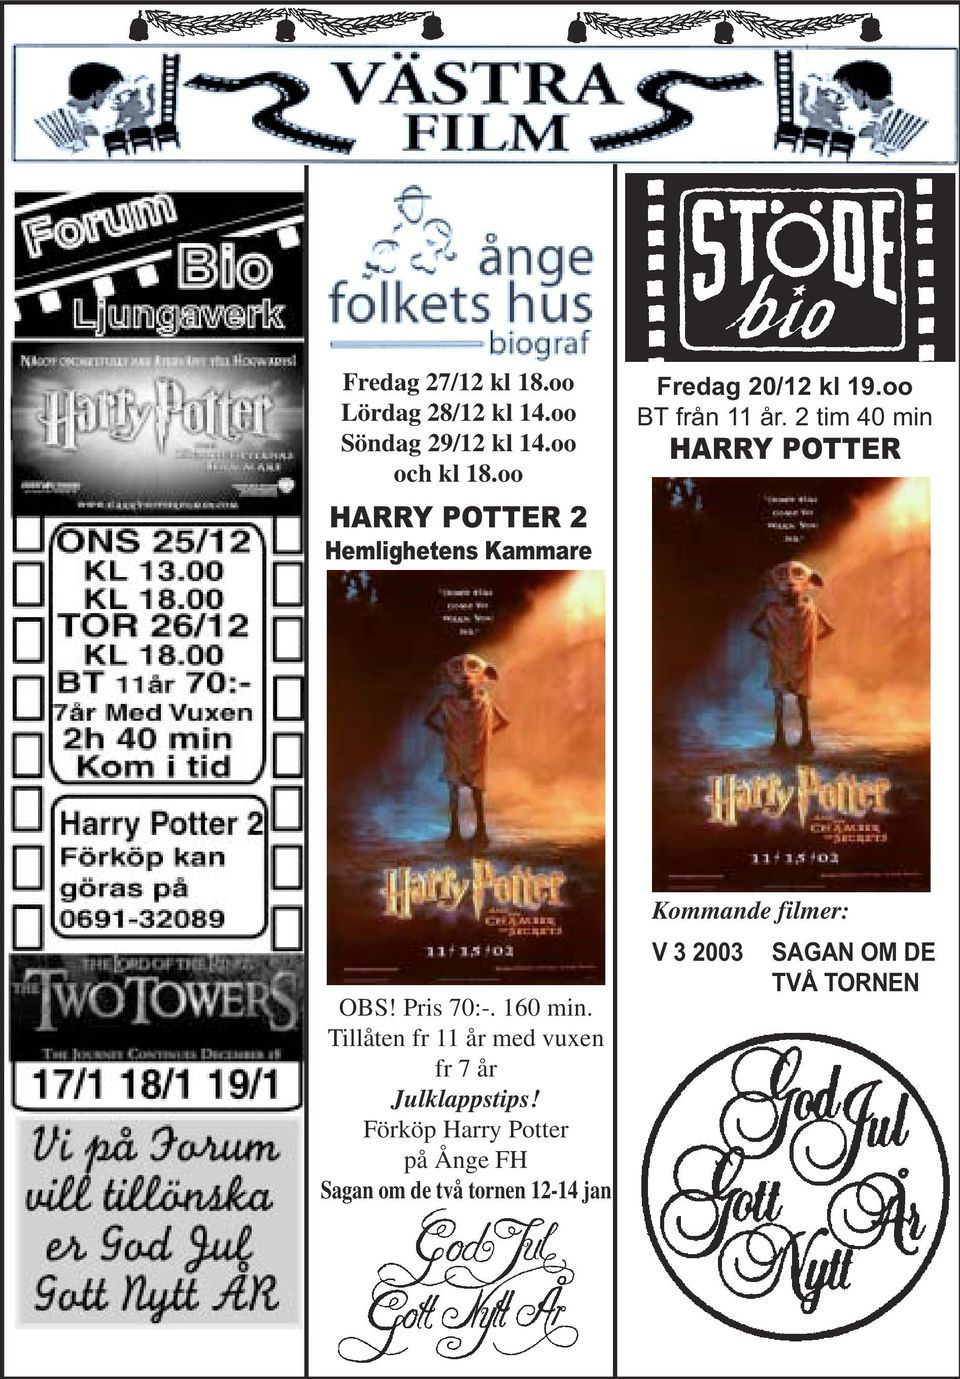 2 tim 40 min HARRY POTTER OBS! Pris 70:-. 160 min.